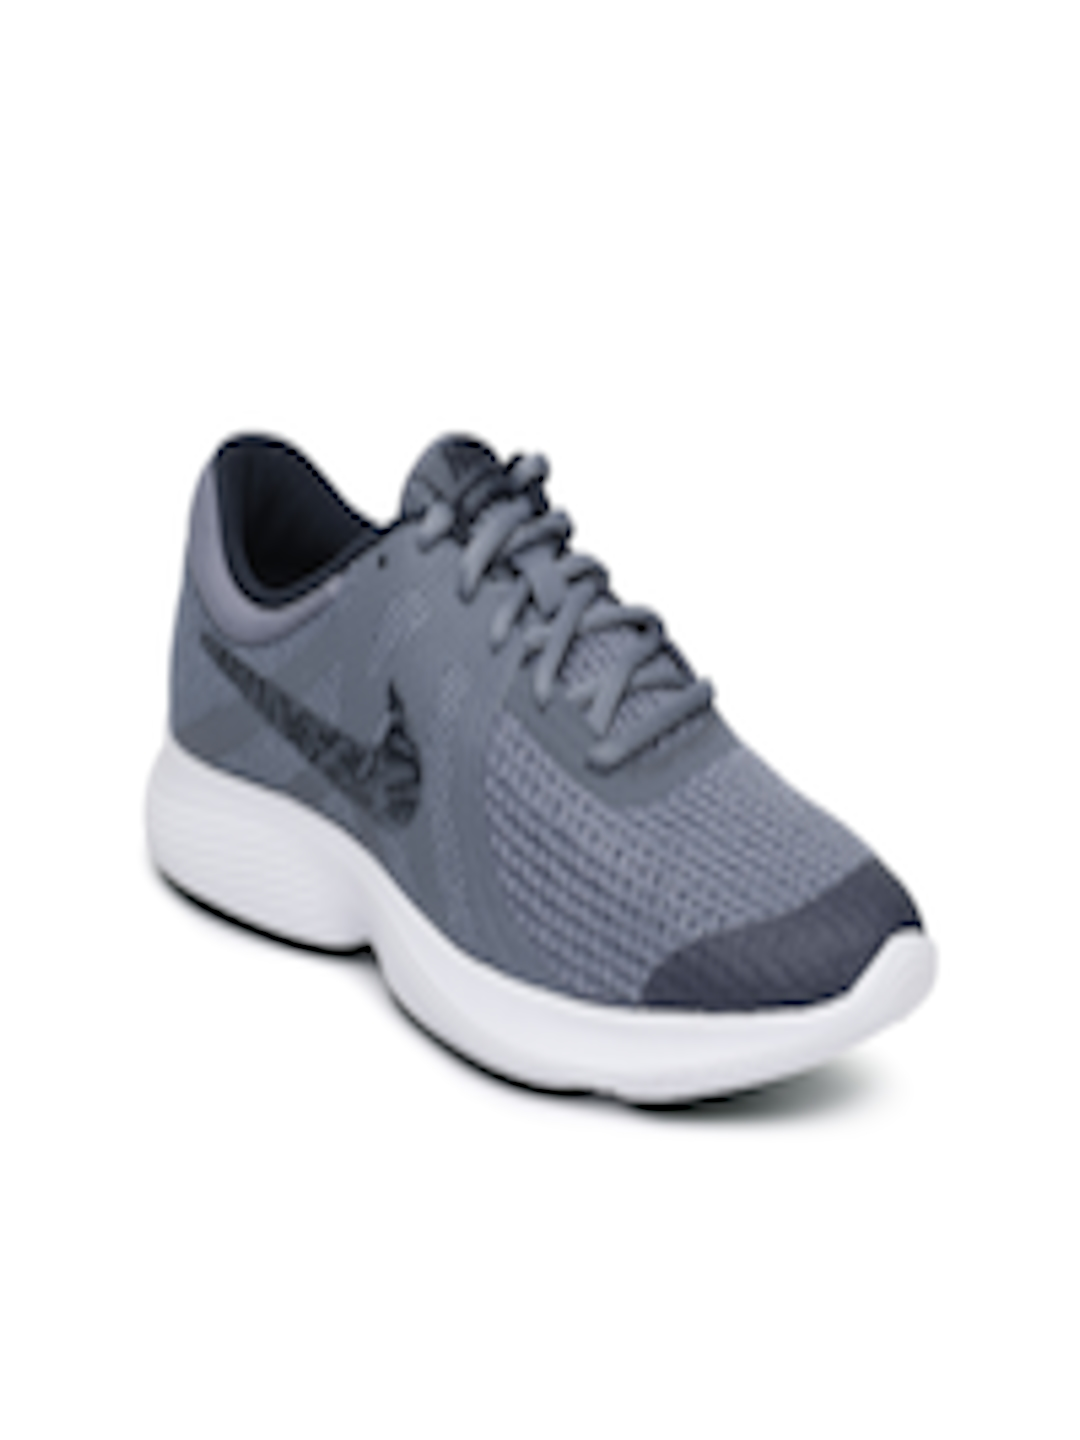 01d81a4db389 Buy Nike Boys Grey Revolution 4 (GS) Running Shoes - Sports Shoes ...